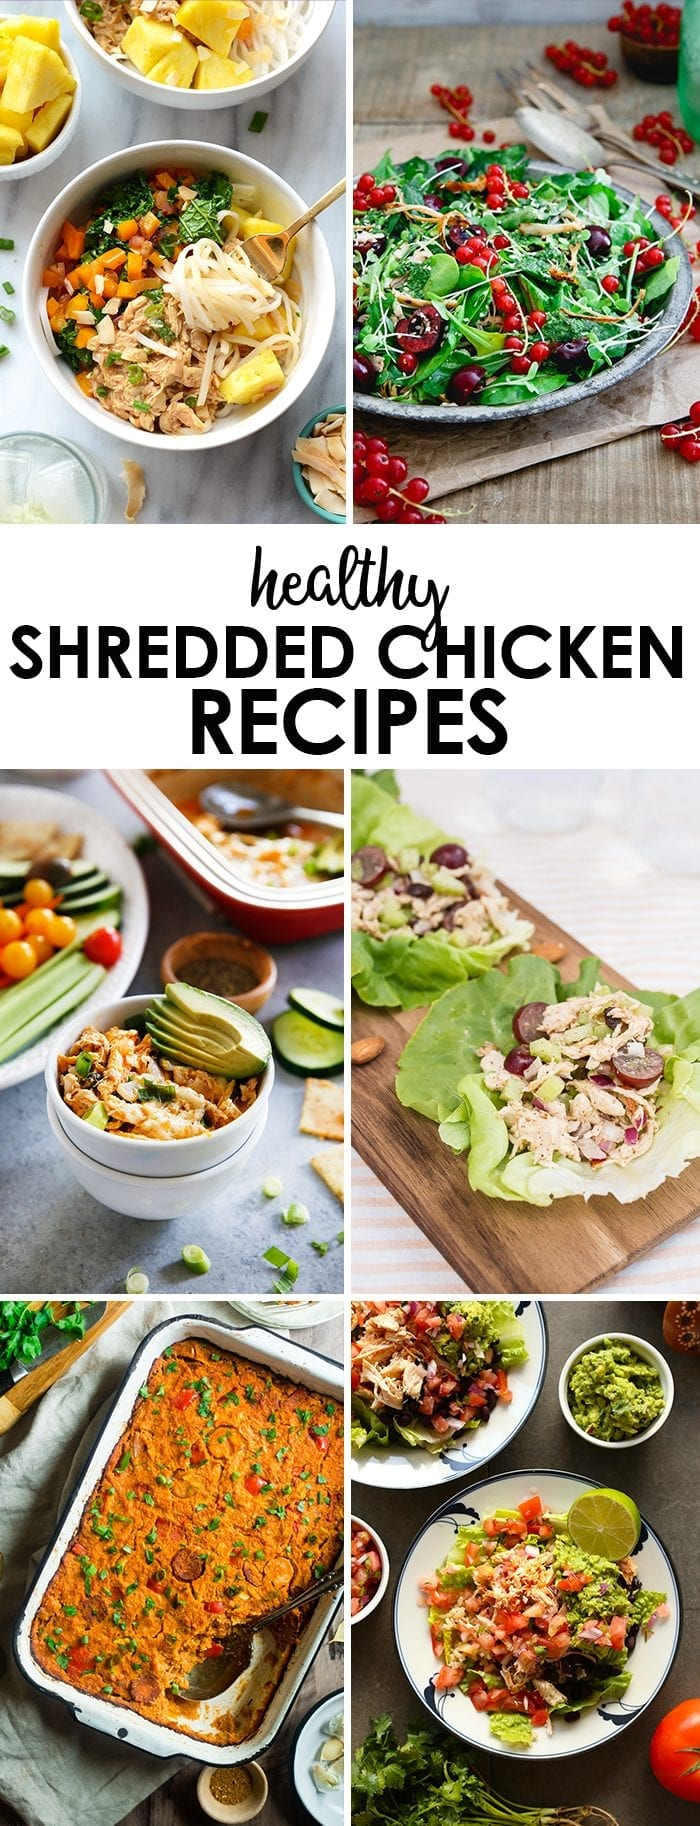 6 healthy shredded chicken recipes for when you have leftover chicken and no idea what to do with it!